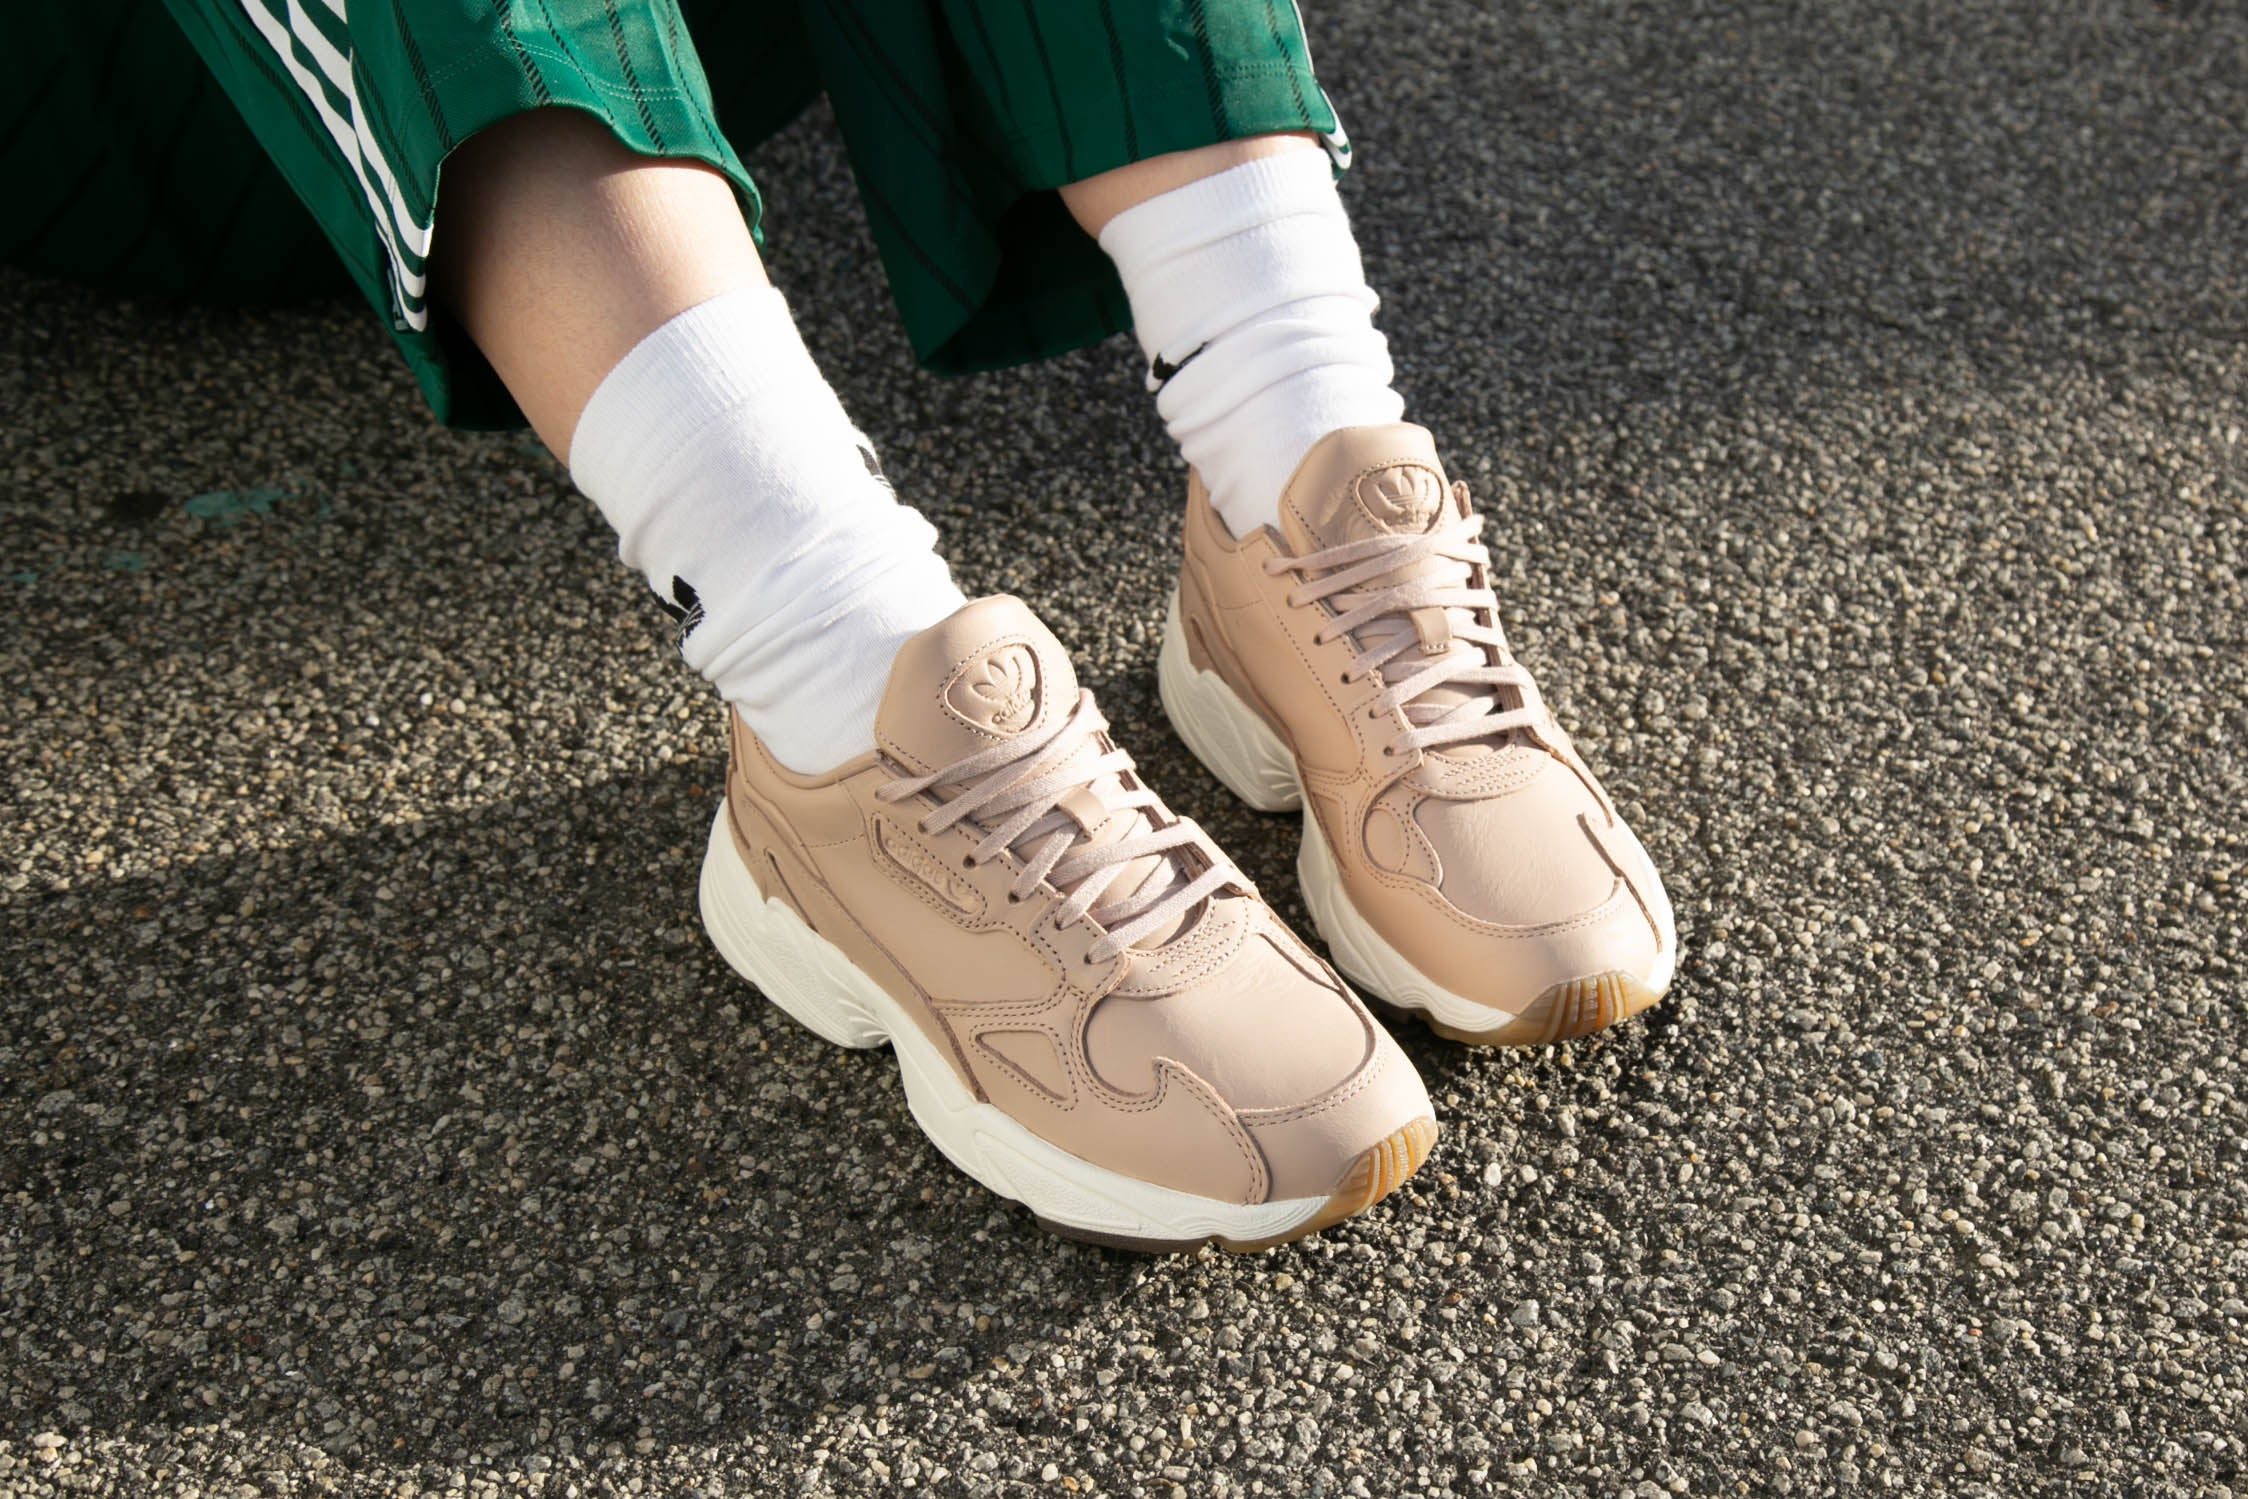 competitive price f495f d7b78 SNEAKER RELEASES  adidas Falcon Ash Pearl  January 10